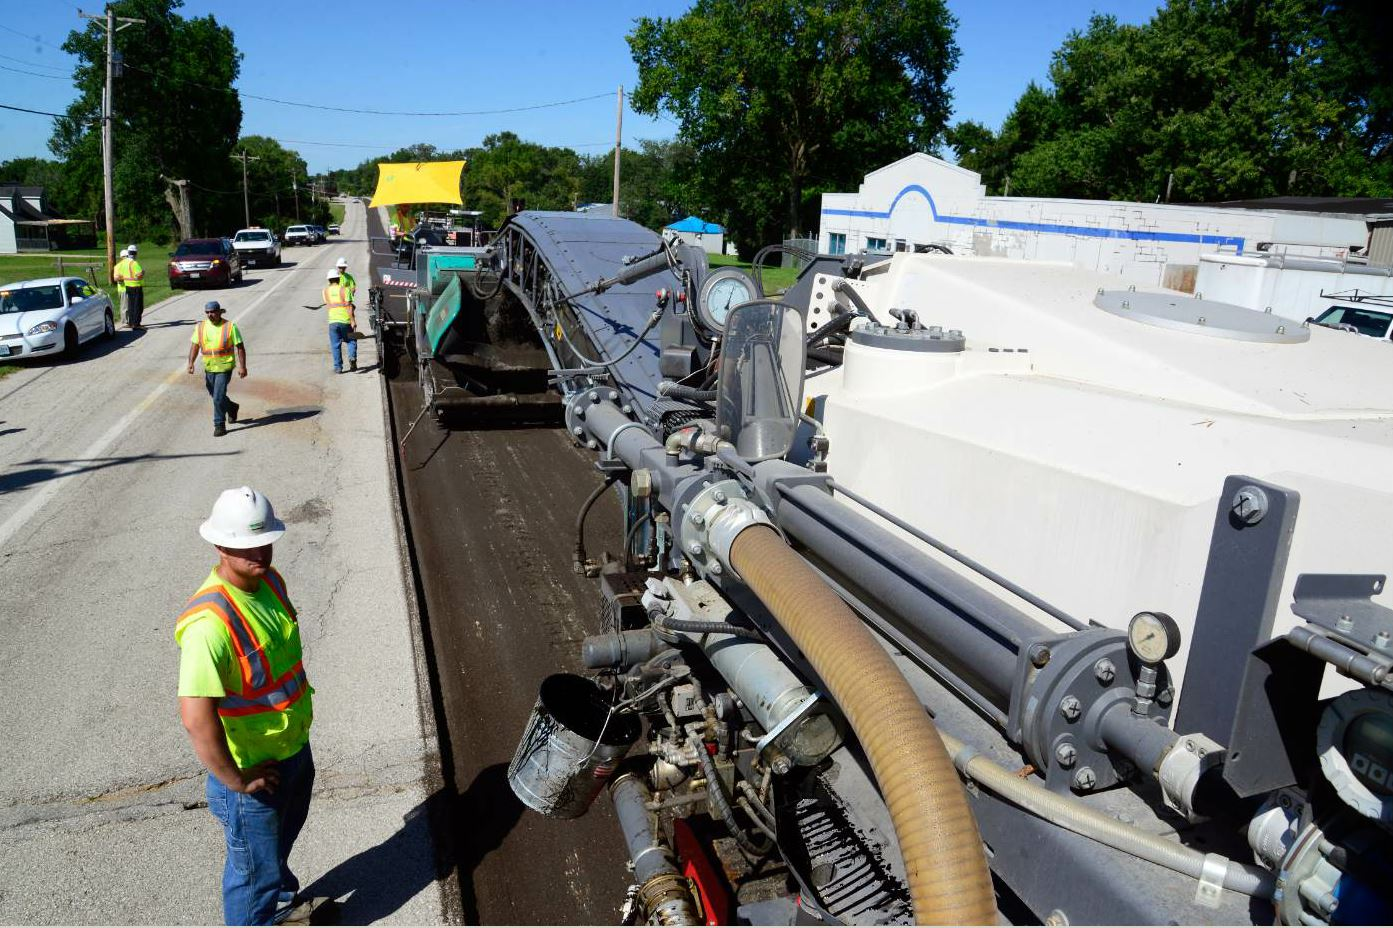 The length of the project was 4.7 miles, with two 12.5-foot lanes recycled, for a total of 9.4 miles.